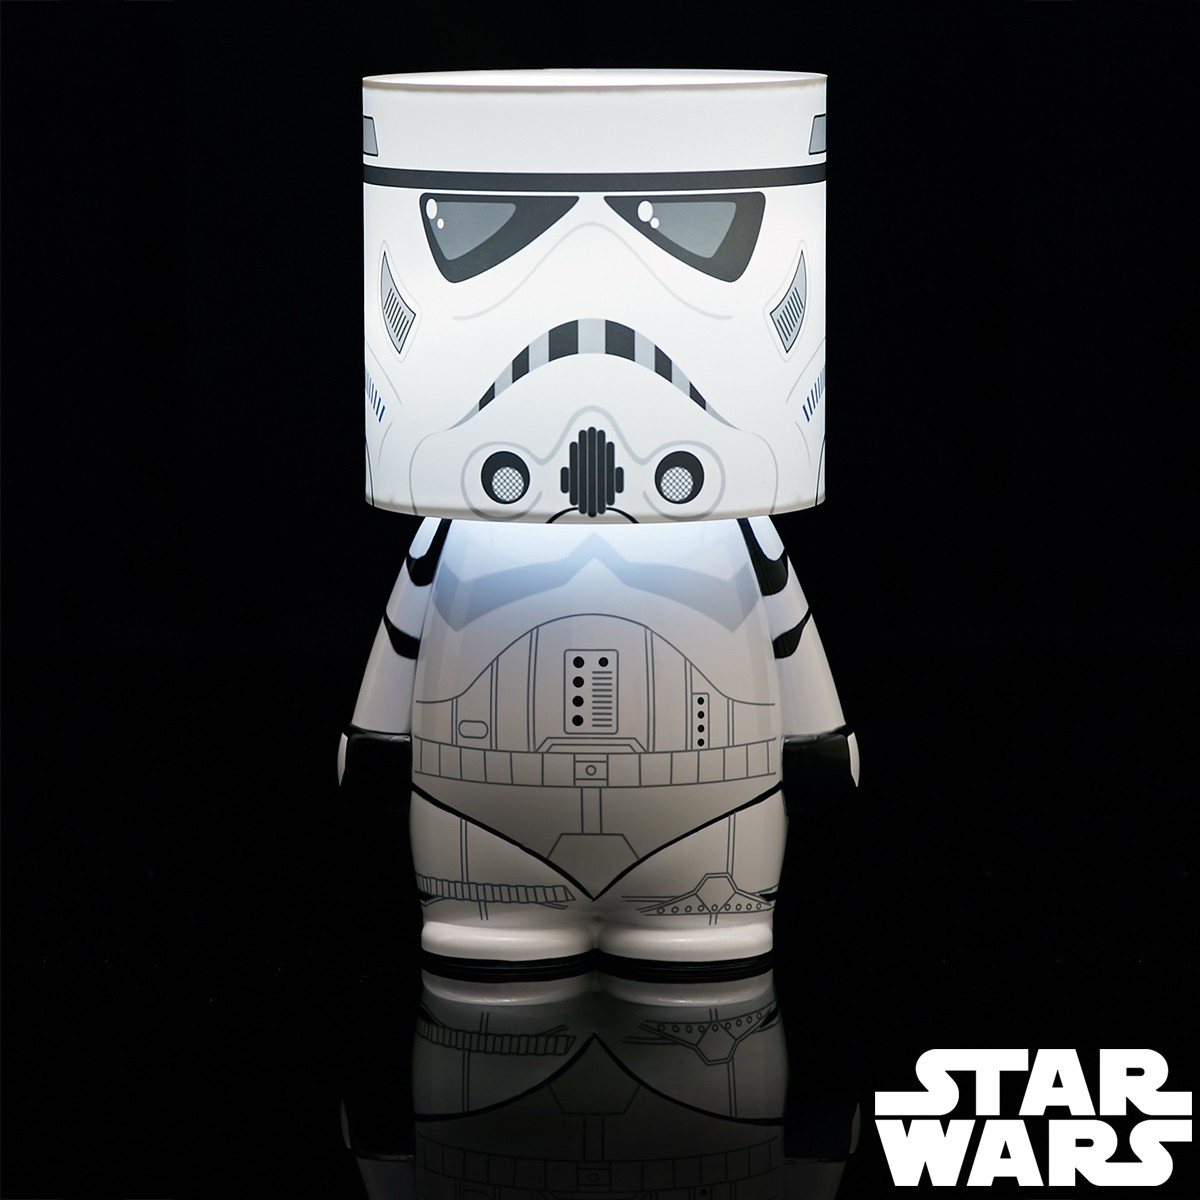 lampe look alite stormtrooper star wars cadeau geek star. Black Bedroom Furniture Sets. Home Design Ideas